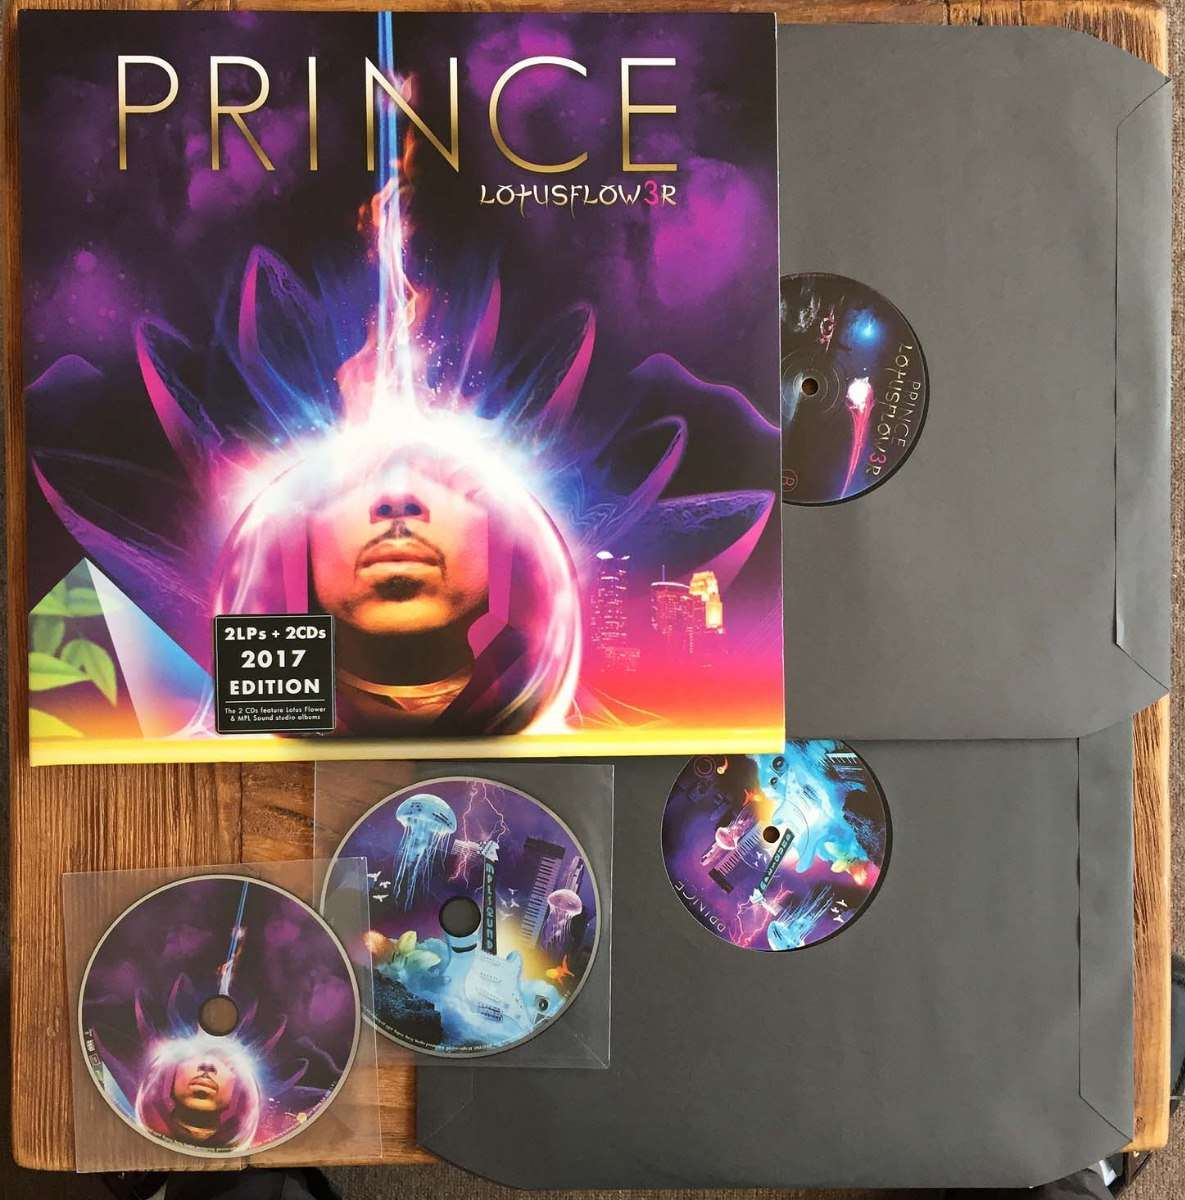 Prince lotusflower mplsound 2 lps y 2 cds 2017 europa 95600 prince lotusflower mplsound 2 lps y 2 cds izmirmasajfo